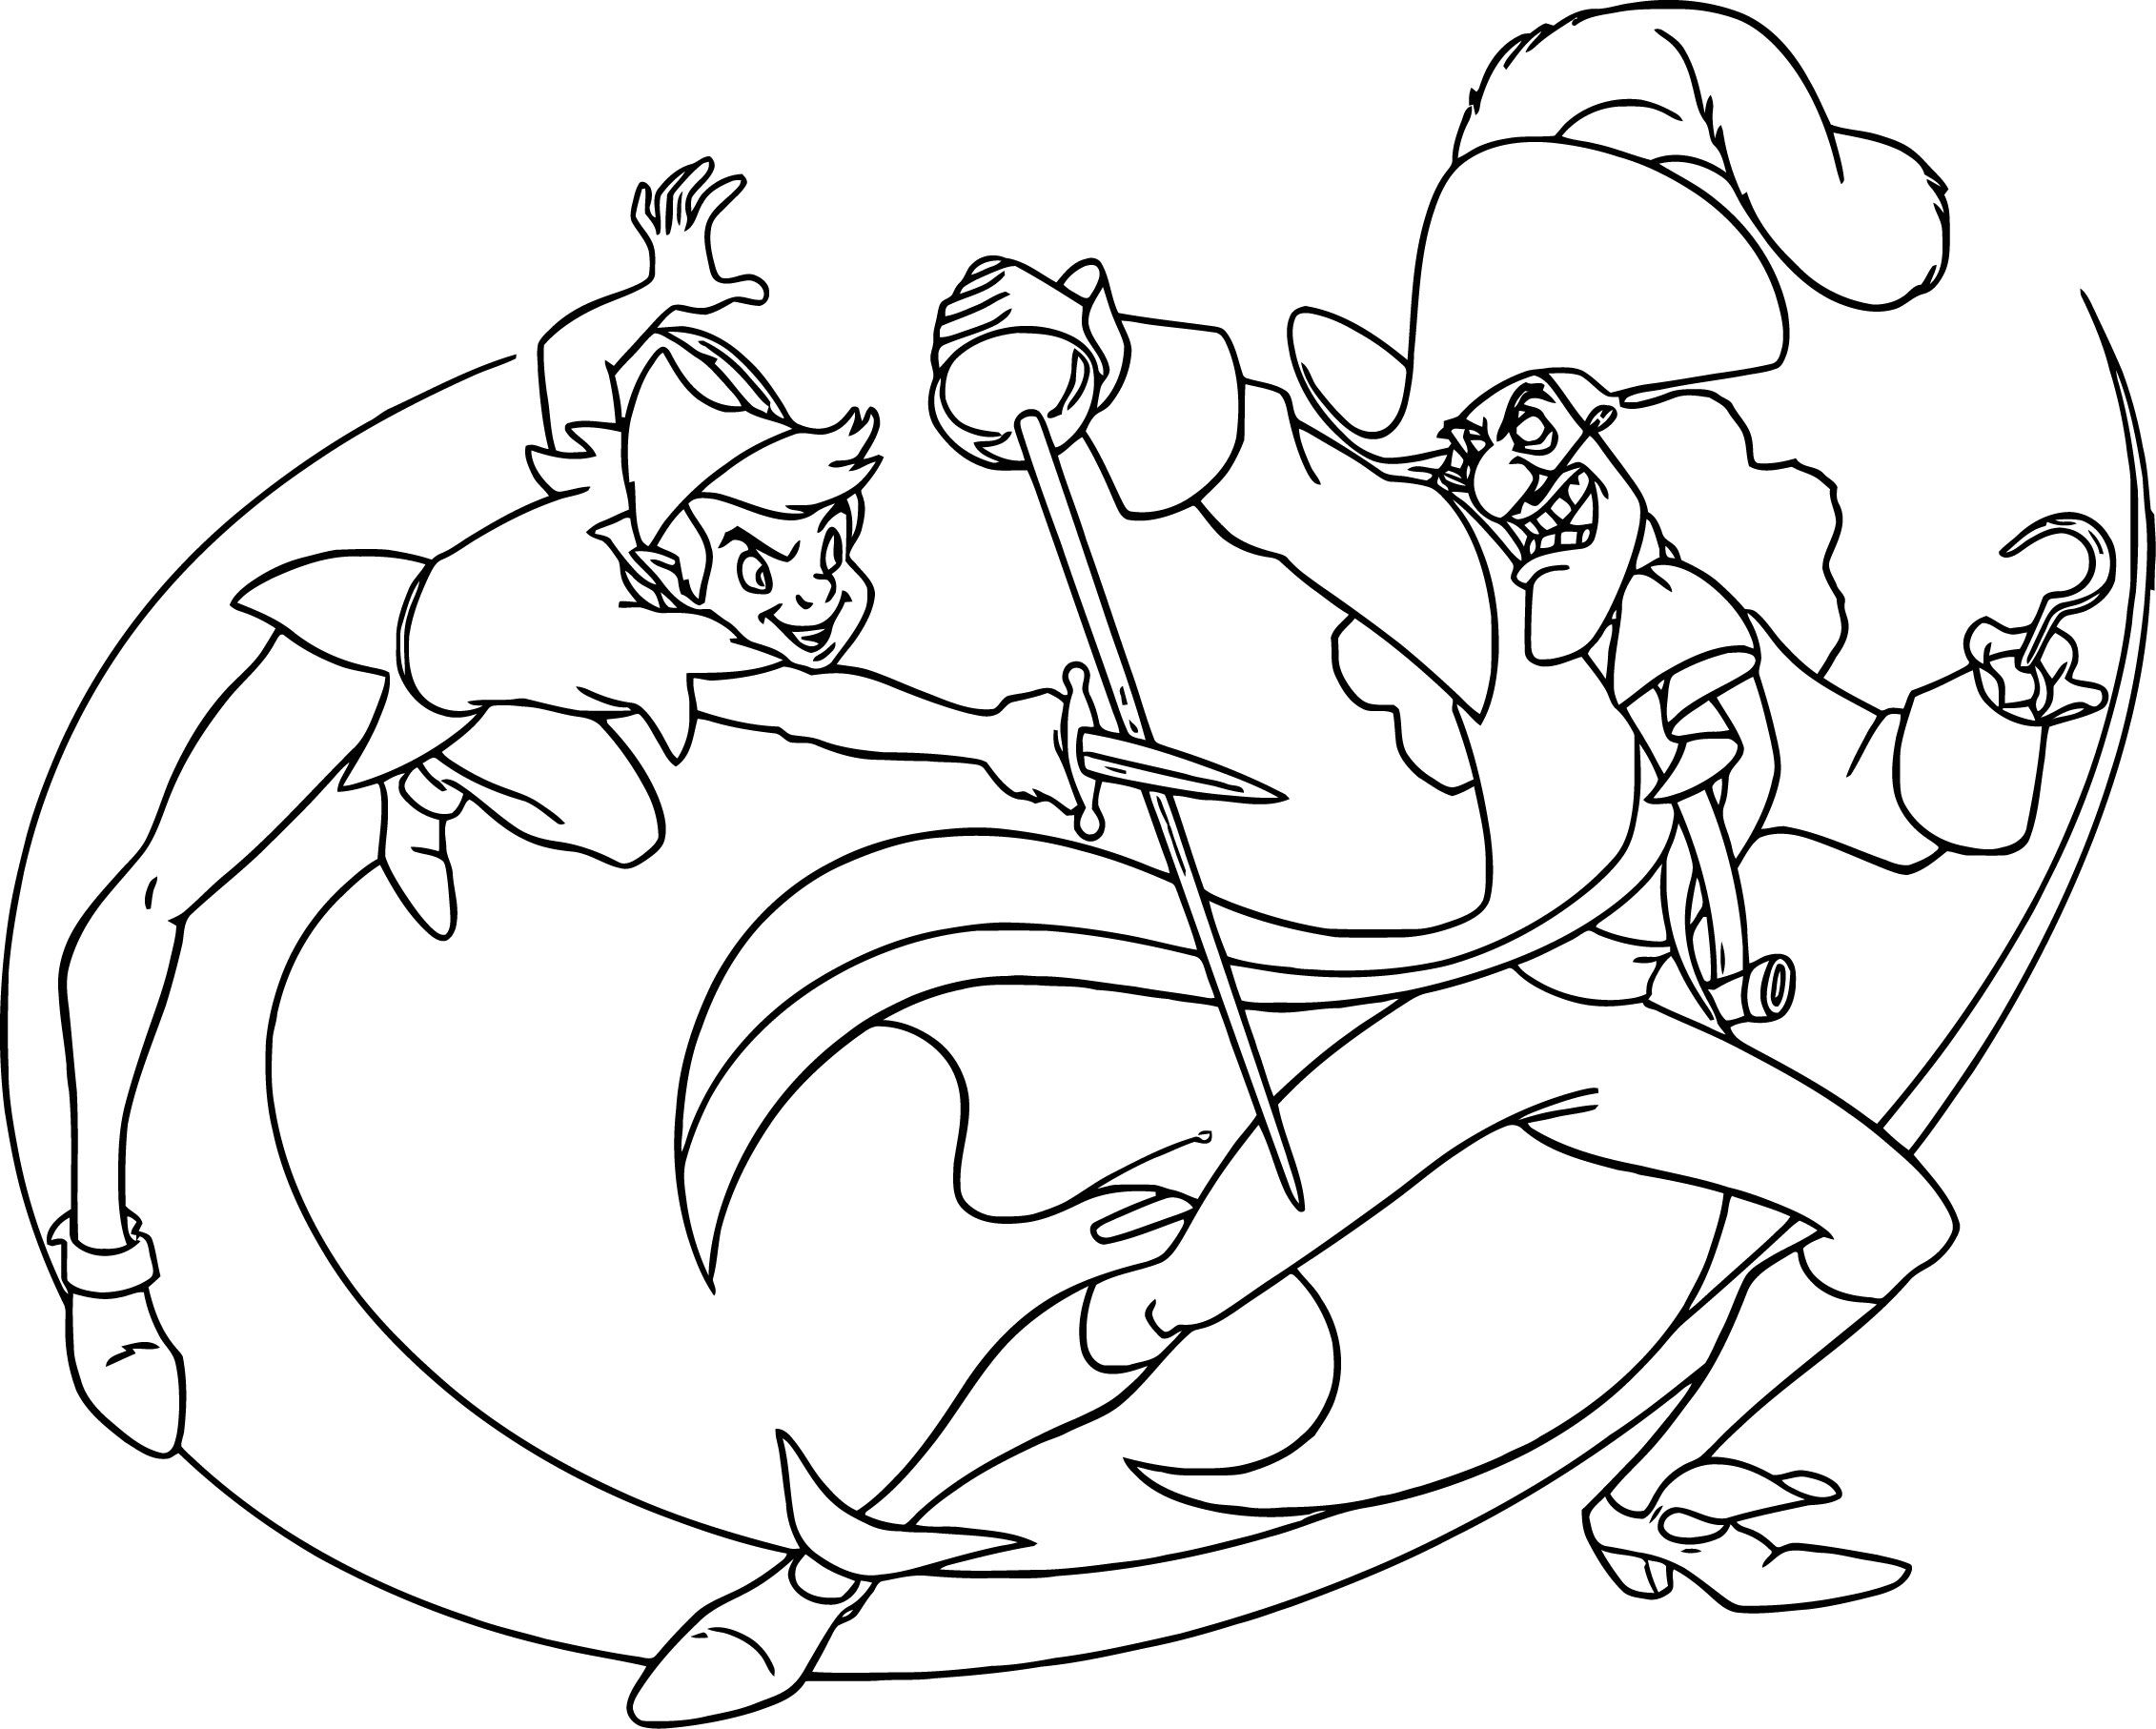 Nice Peter Pan And Captain Hook Coloring Pages Peter Pan Coloring Pages Disney Coloring Pages Cartoon Coloring Pages